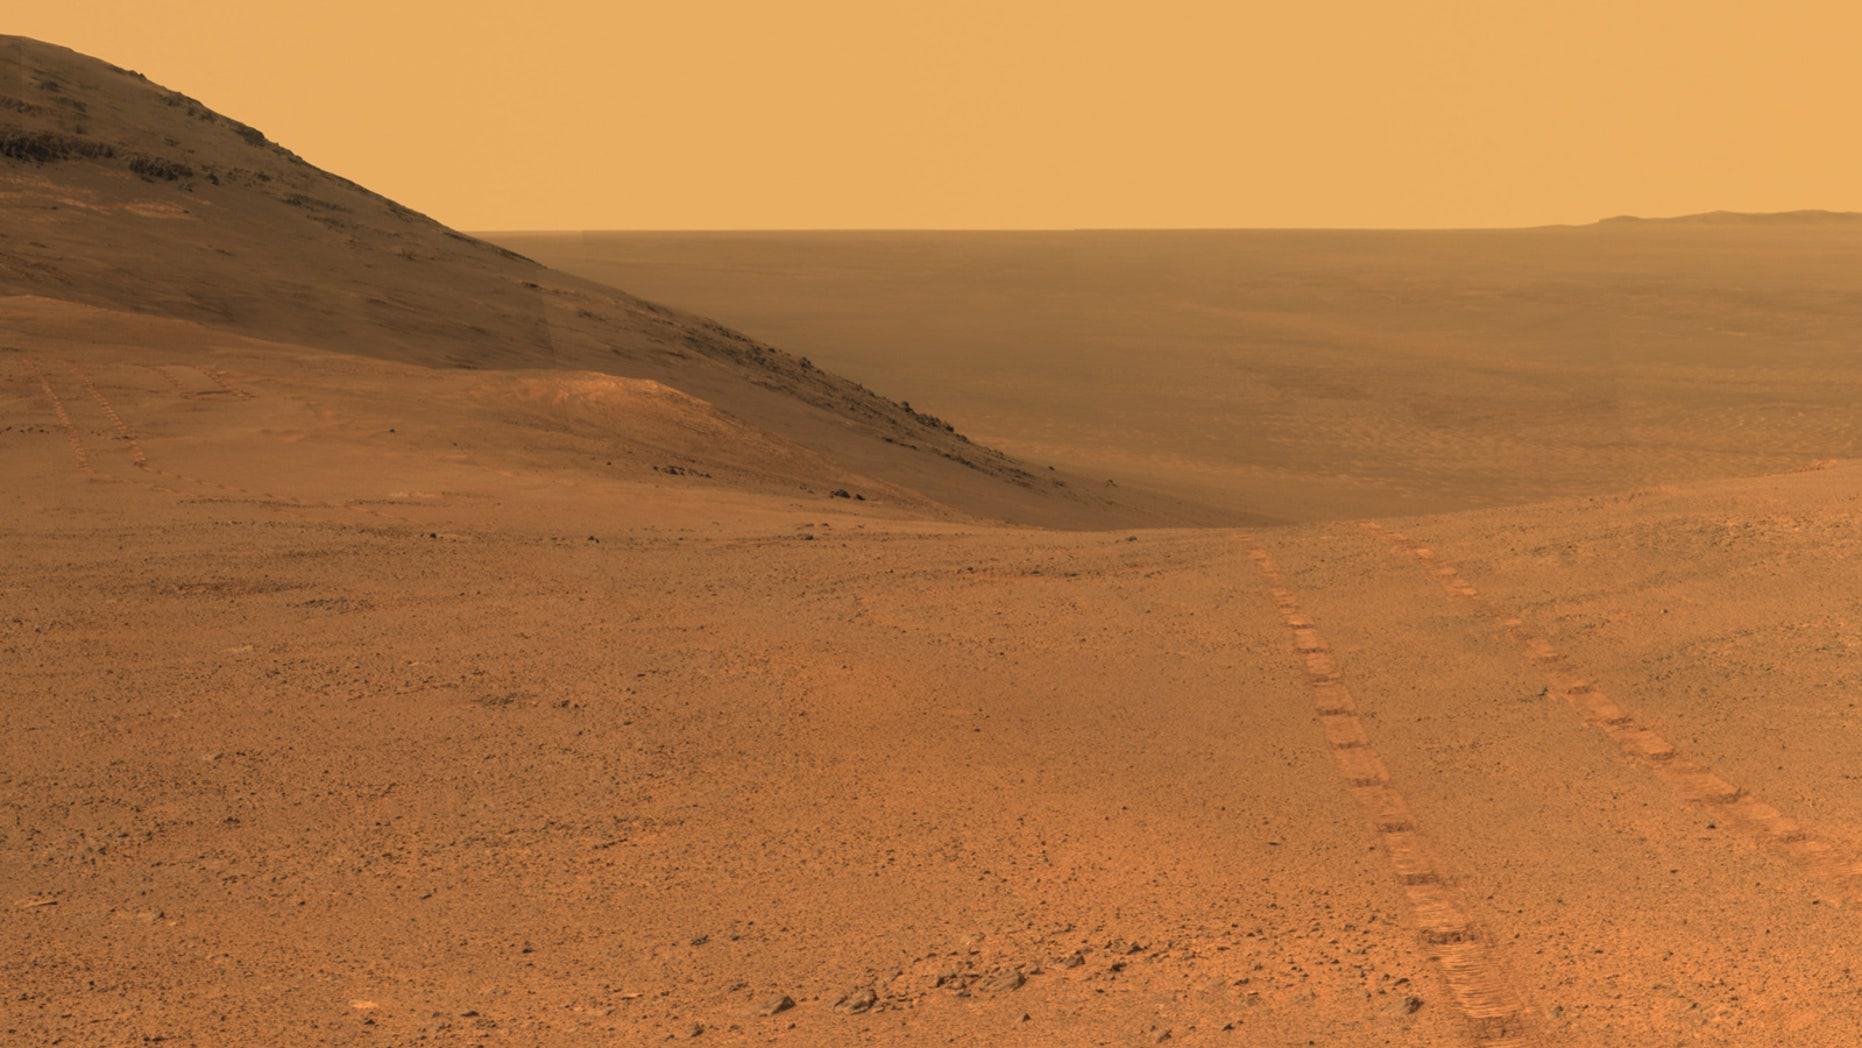 Tracks from NASA's Opportunity rover on Mars are visible on the Martian surface in this image taken in June 2017. After months of silence from Opportunity due to a dust storm on Mars, NASA has begun a 45-day campaign to reestablish contact with the rover.